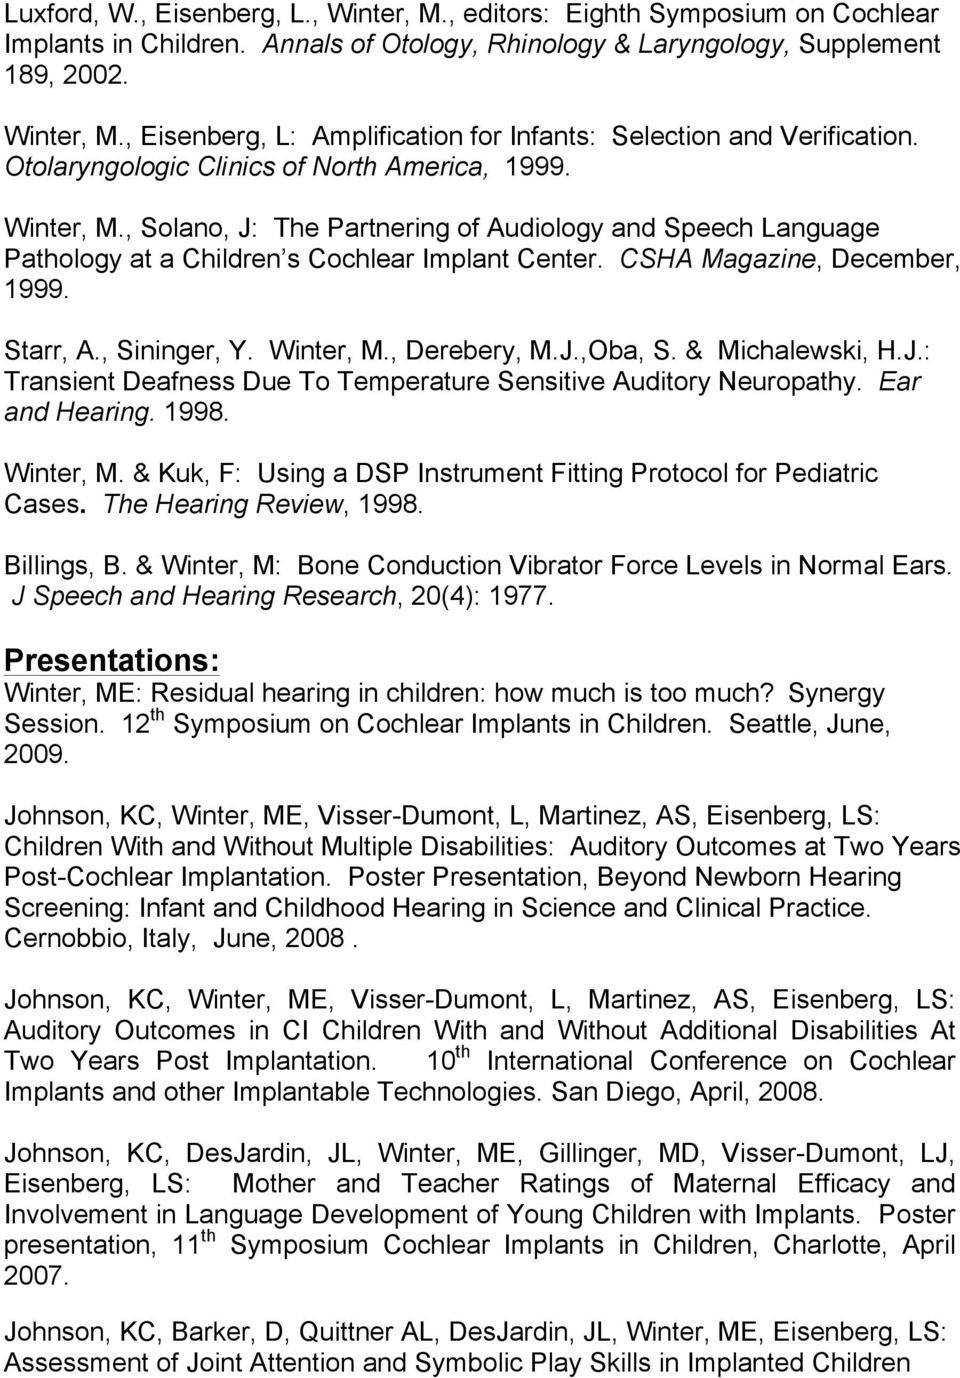 Starr, A., Sininger, Y. Winter, M., Derebery, M.J.,Oba, S. & Michalewski, H.J.: Transient Deafness Due To Temperature Sensitive Auditory Neuropathy. Ear and Hearing. 1998. Winter, M. & Kuk, F: Using a DSP Instrument Fitting Protocol for Pediatric Cases.